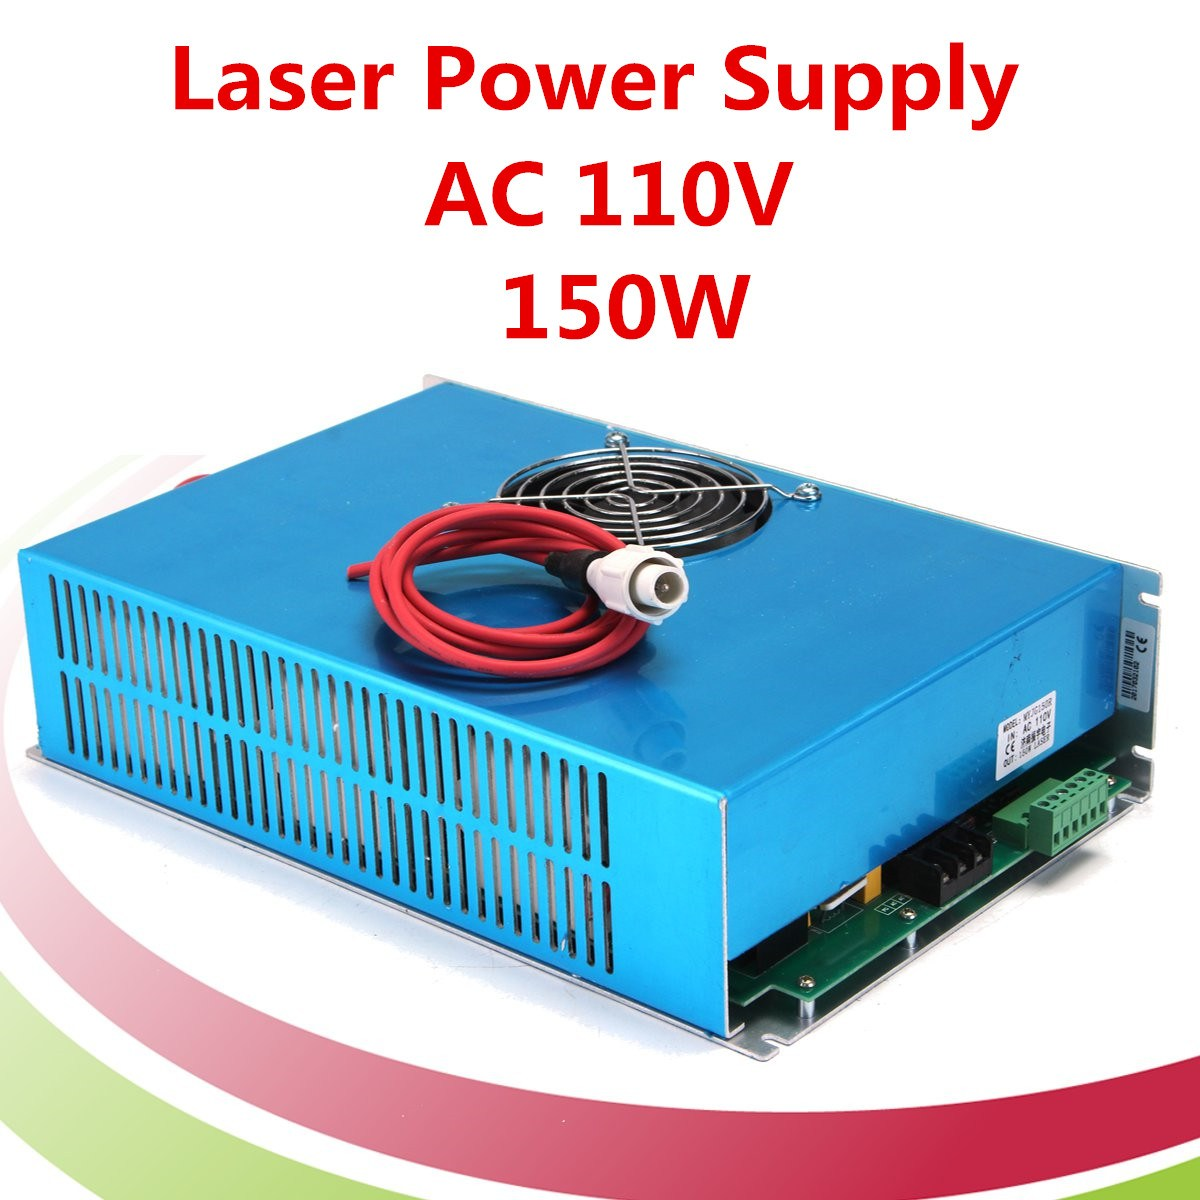 New AC 110V 150W Laser Power Supply High Speed Blue for CO2 Laser Engraving Cutting Machine Visible Light with Cable high voltage flyback transformer for co2 50w laser power supply